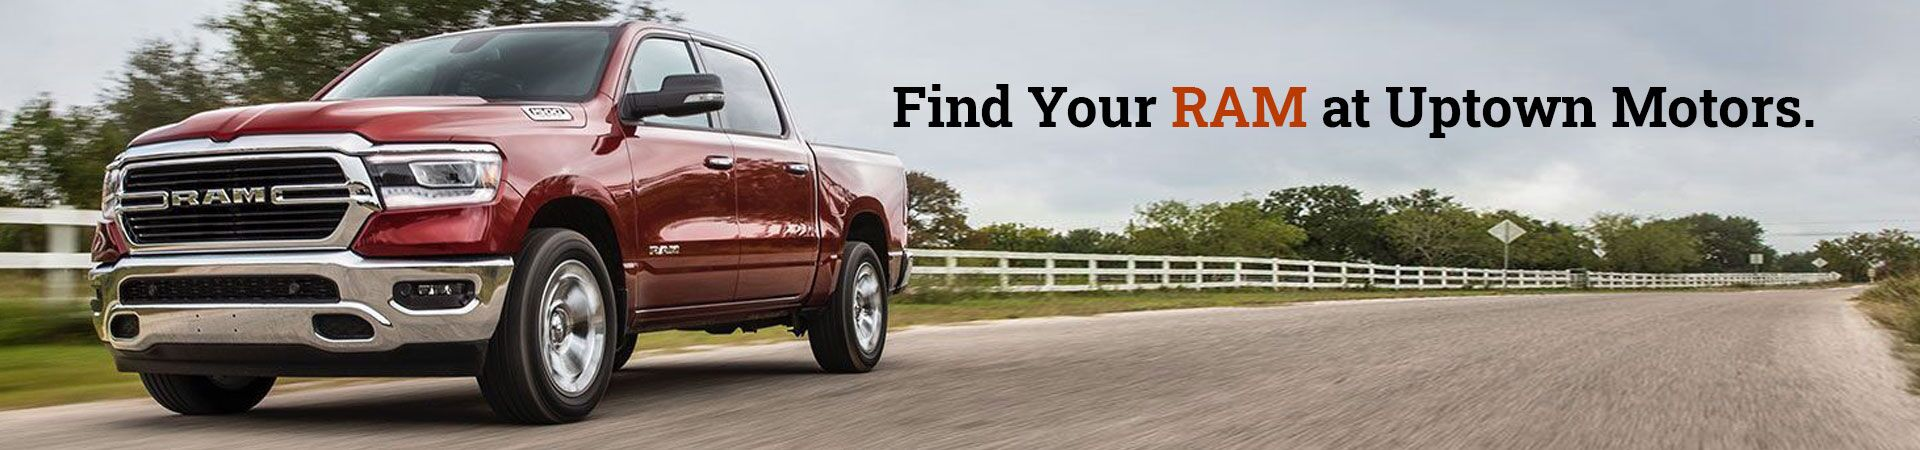 Find Your Ram Here at Uptown Motors